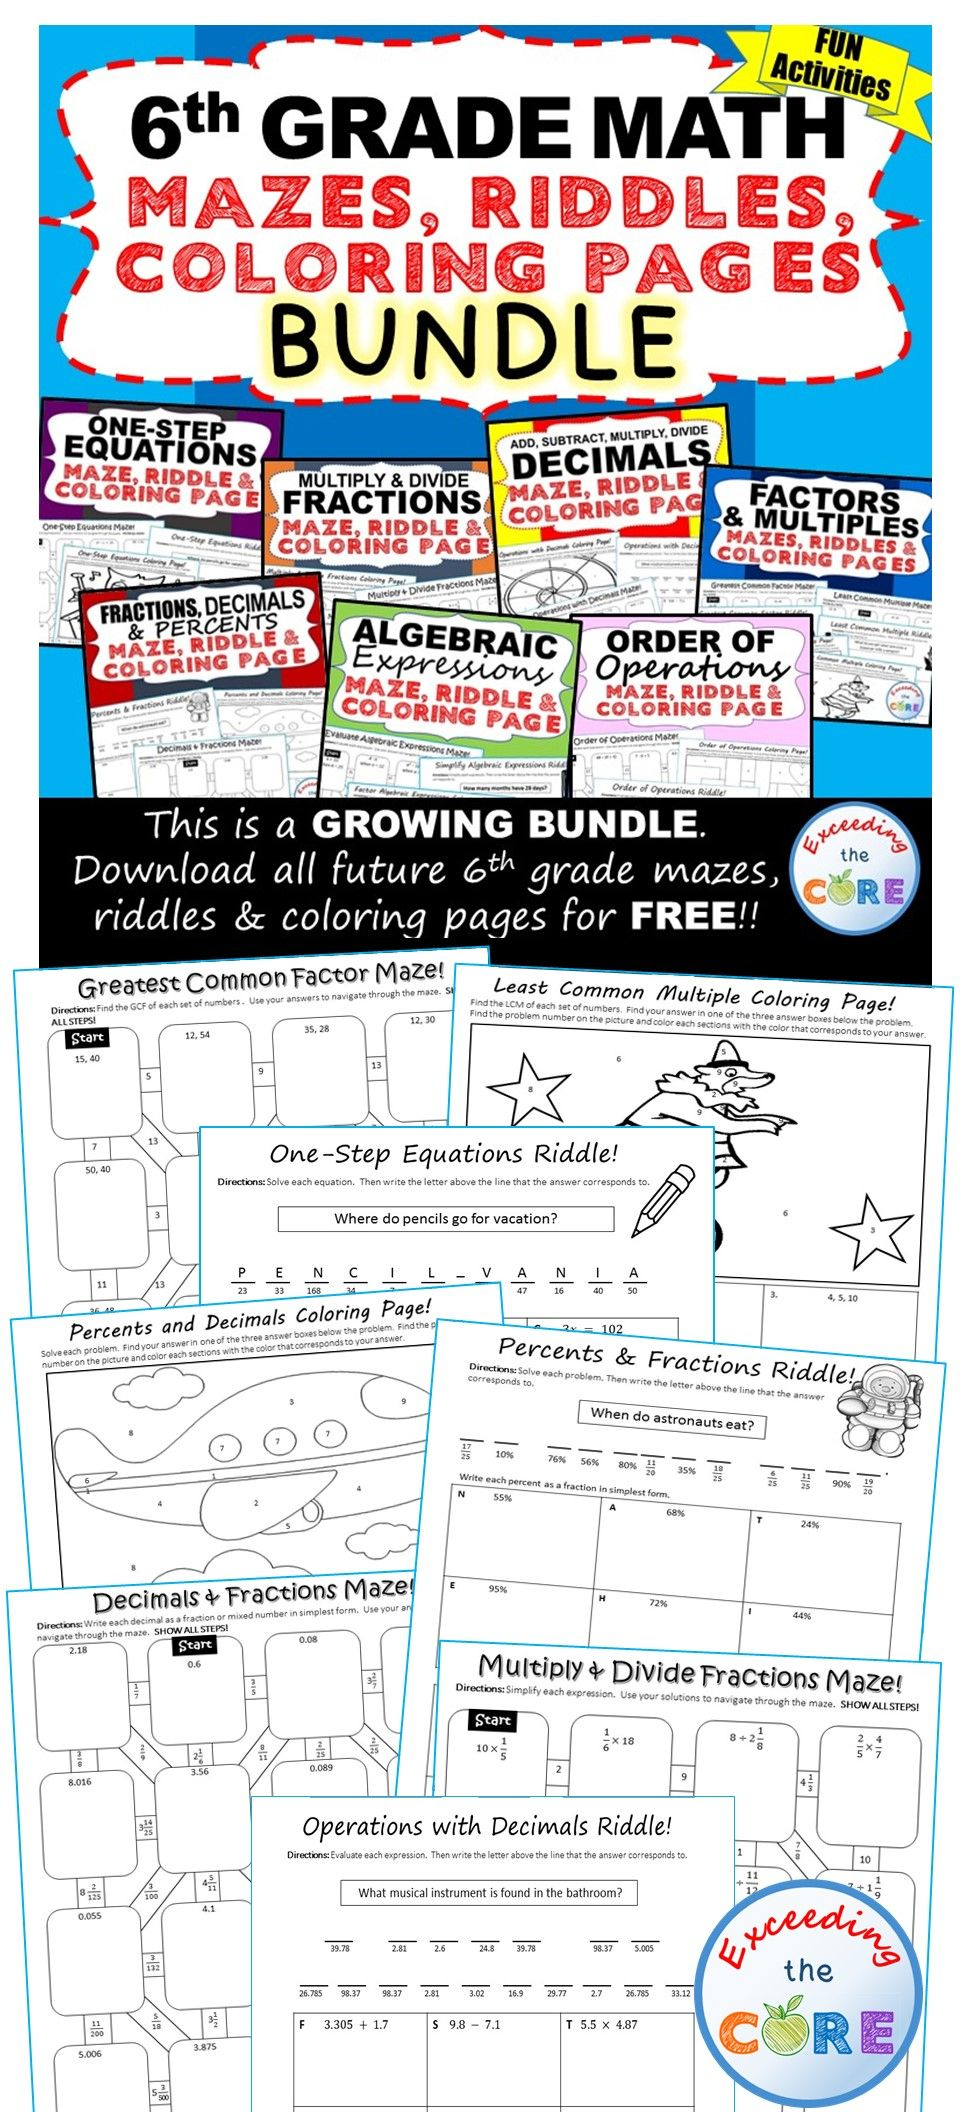 Fun coloring activities for middle school - Let Your Students Have Fun While Practicing The 6th Grade Math Curriculum With These Math Mazes